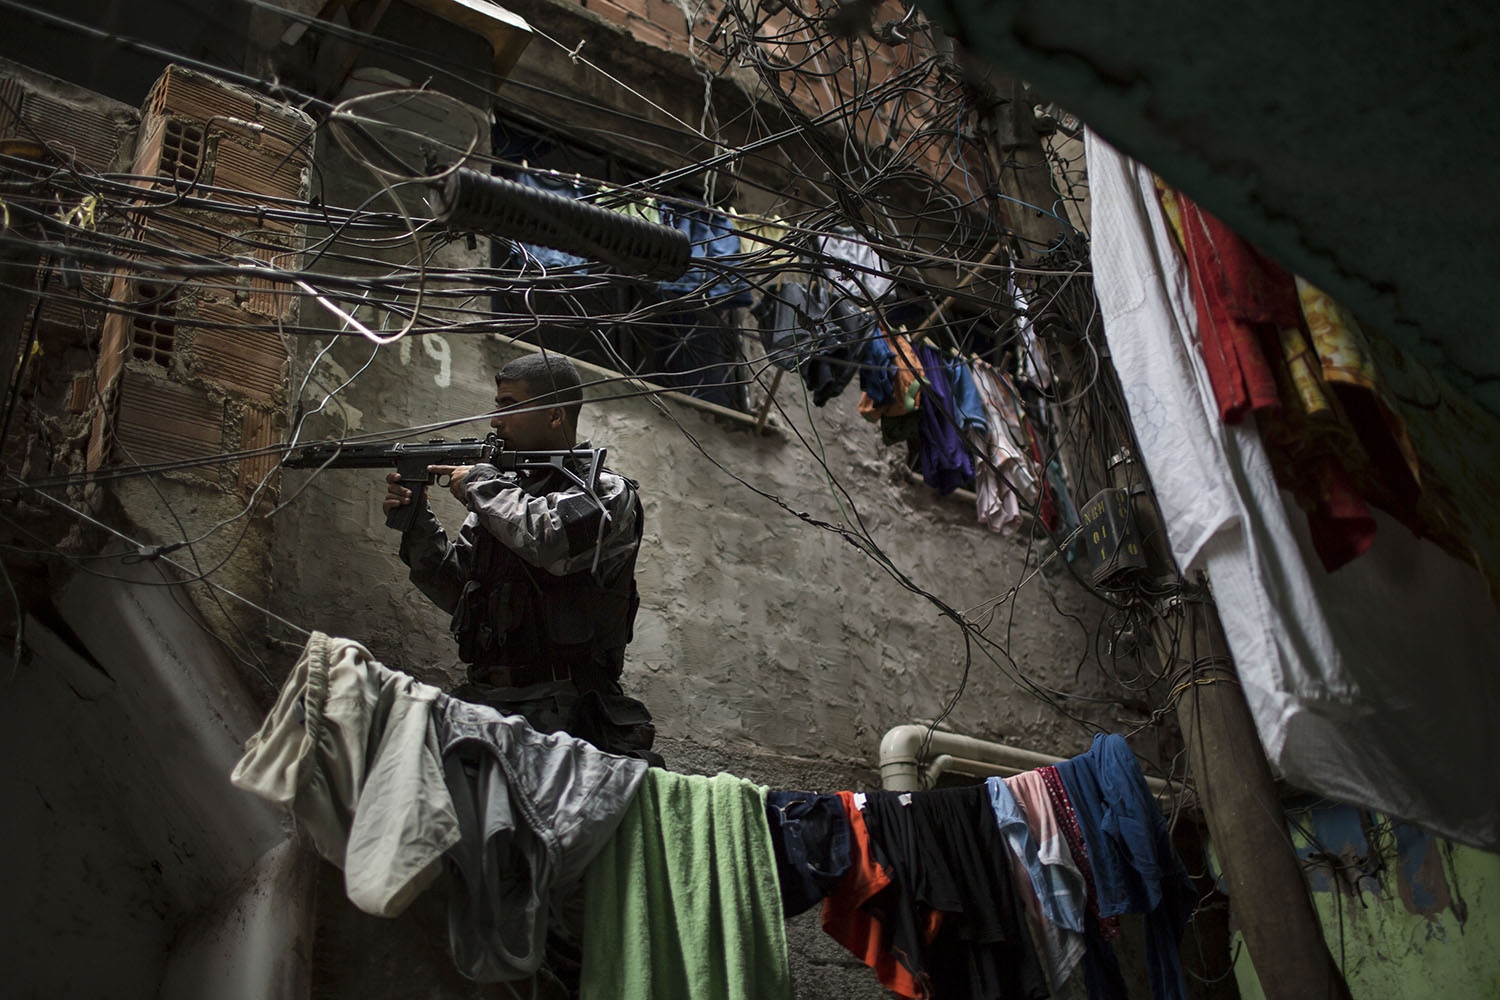 Mar. 25, 2014. Framed between makeshift clotheslines, a military police officer patrols during an operation in the Mare slum complex in Rio de Janeiro, Brazil.